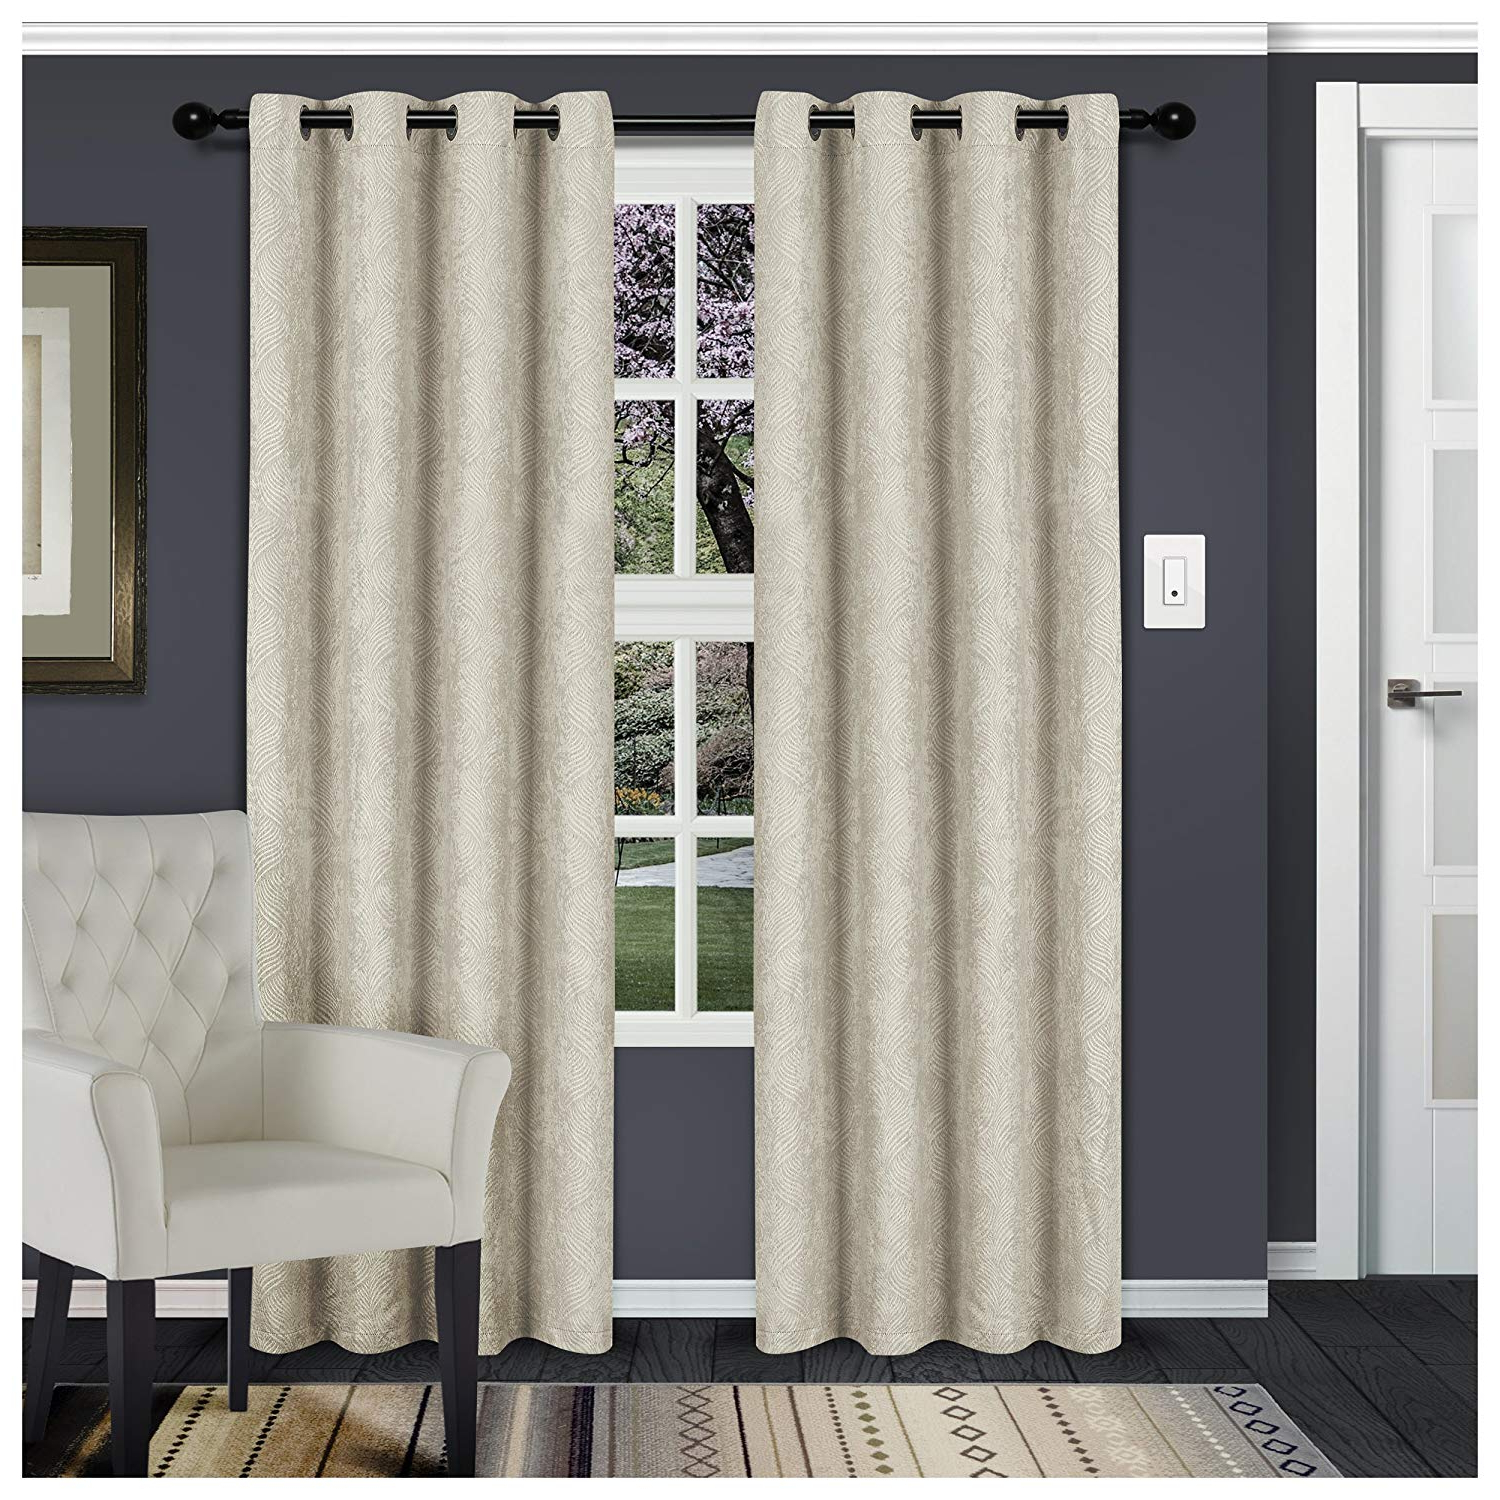 Well Known Superior Solid Insulated Thermal Blackout Grommet Curtain Panel Pairs Inside Superior Waverly Blackout Curtain Set Of 2, Thermal Insulated Panel Pair With Grommet Top Header, Beautiful Embossed Wave Room Darkening Drapes, (View 5 of 20)